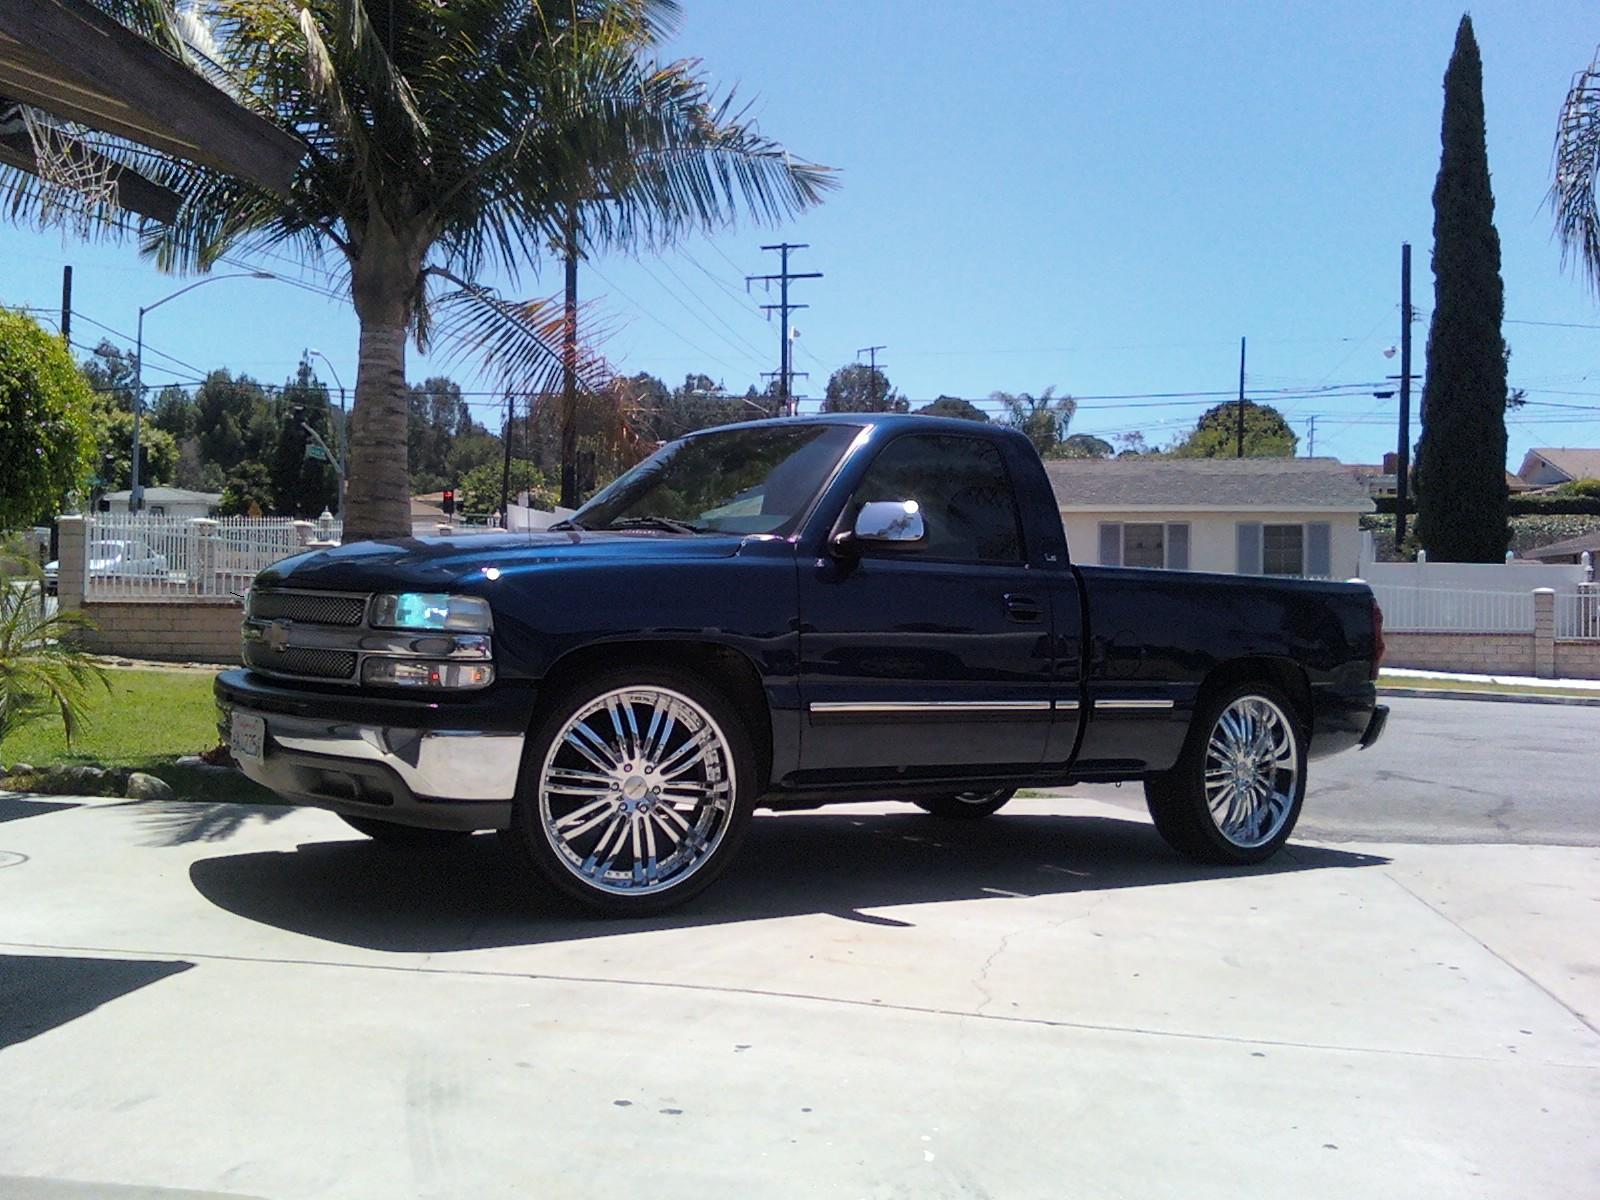 sittinglowon4s 2001 chevrolet silverado 1500 regular cab. Black Bedroom Furniture Sets. Home Design Ideas